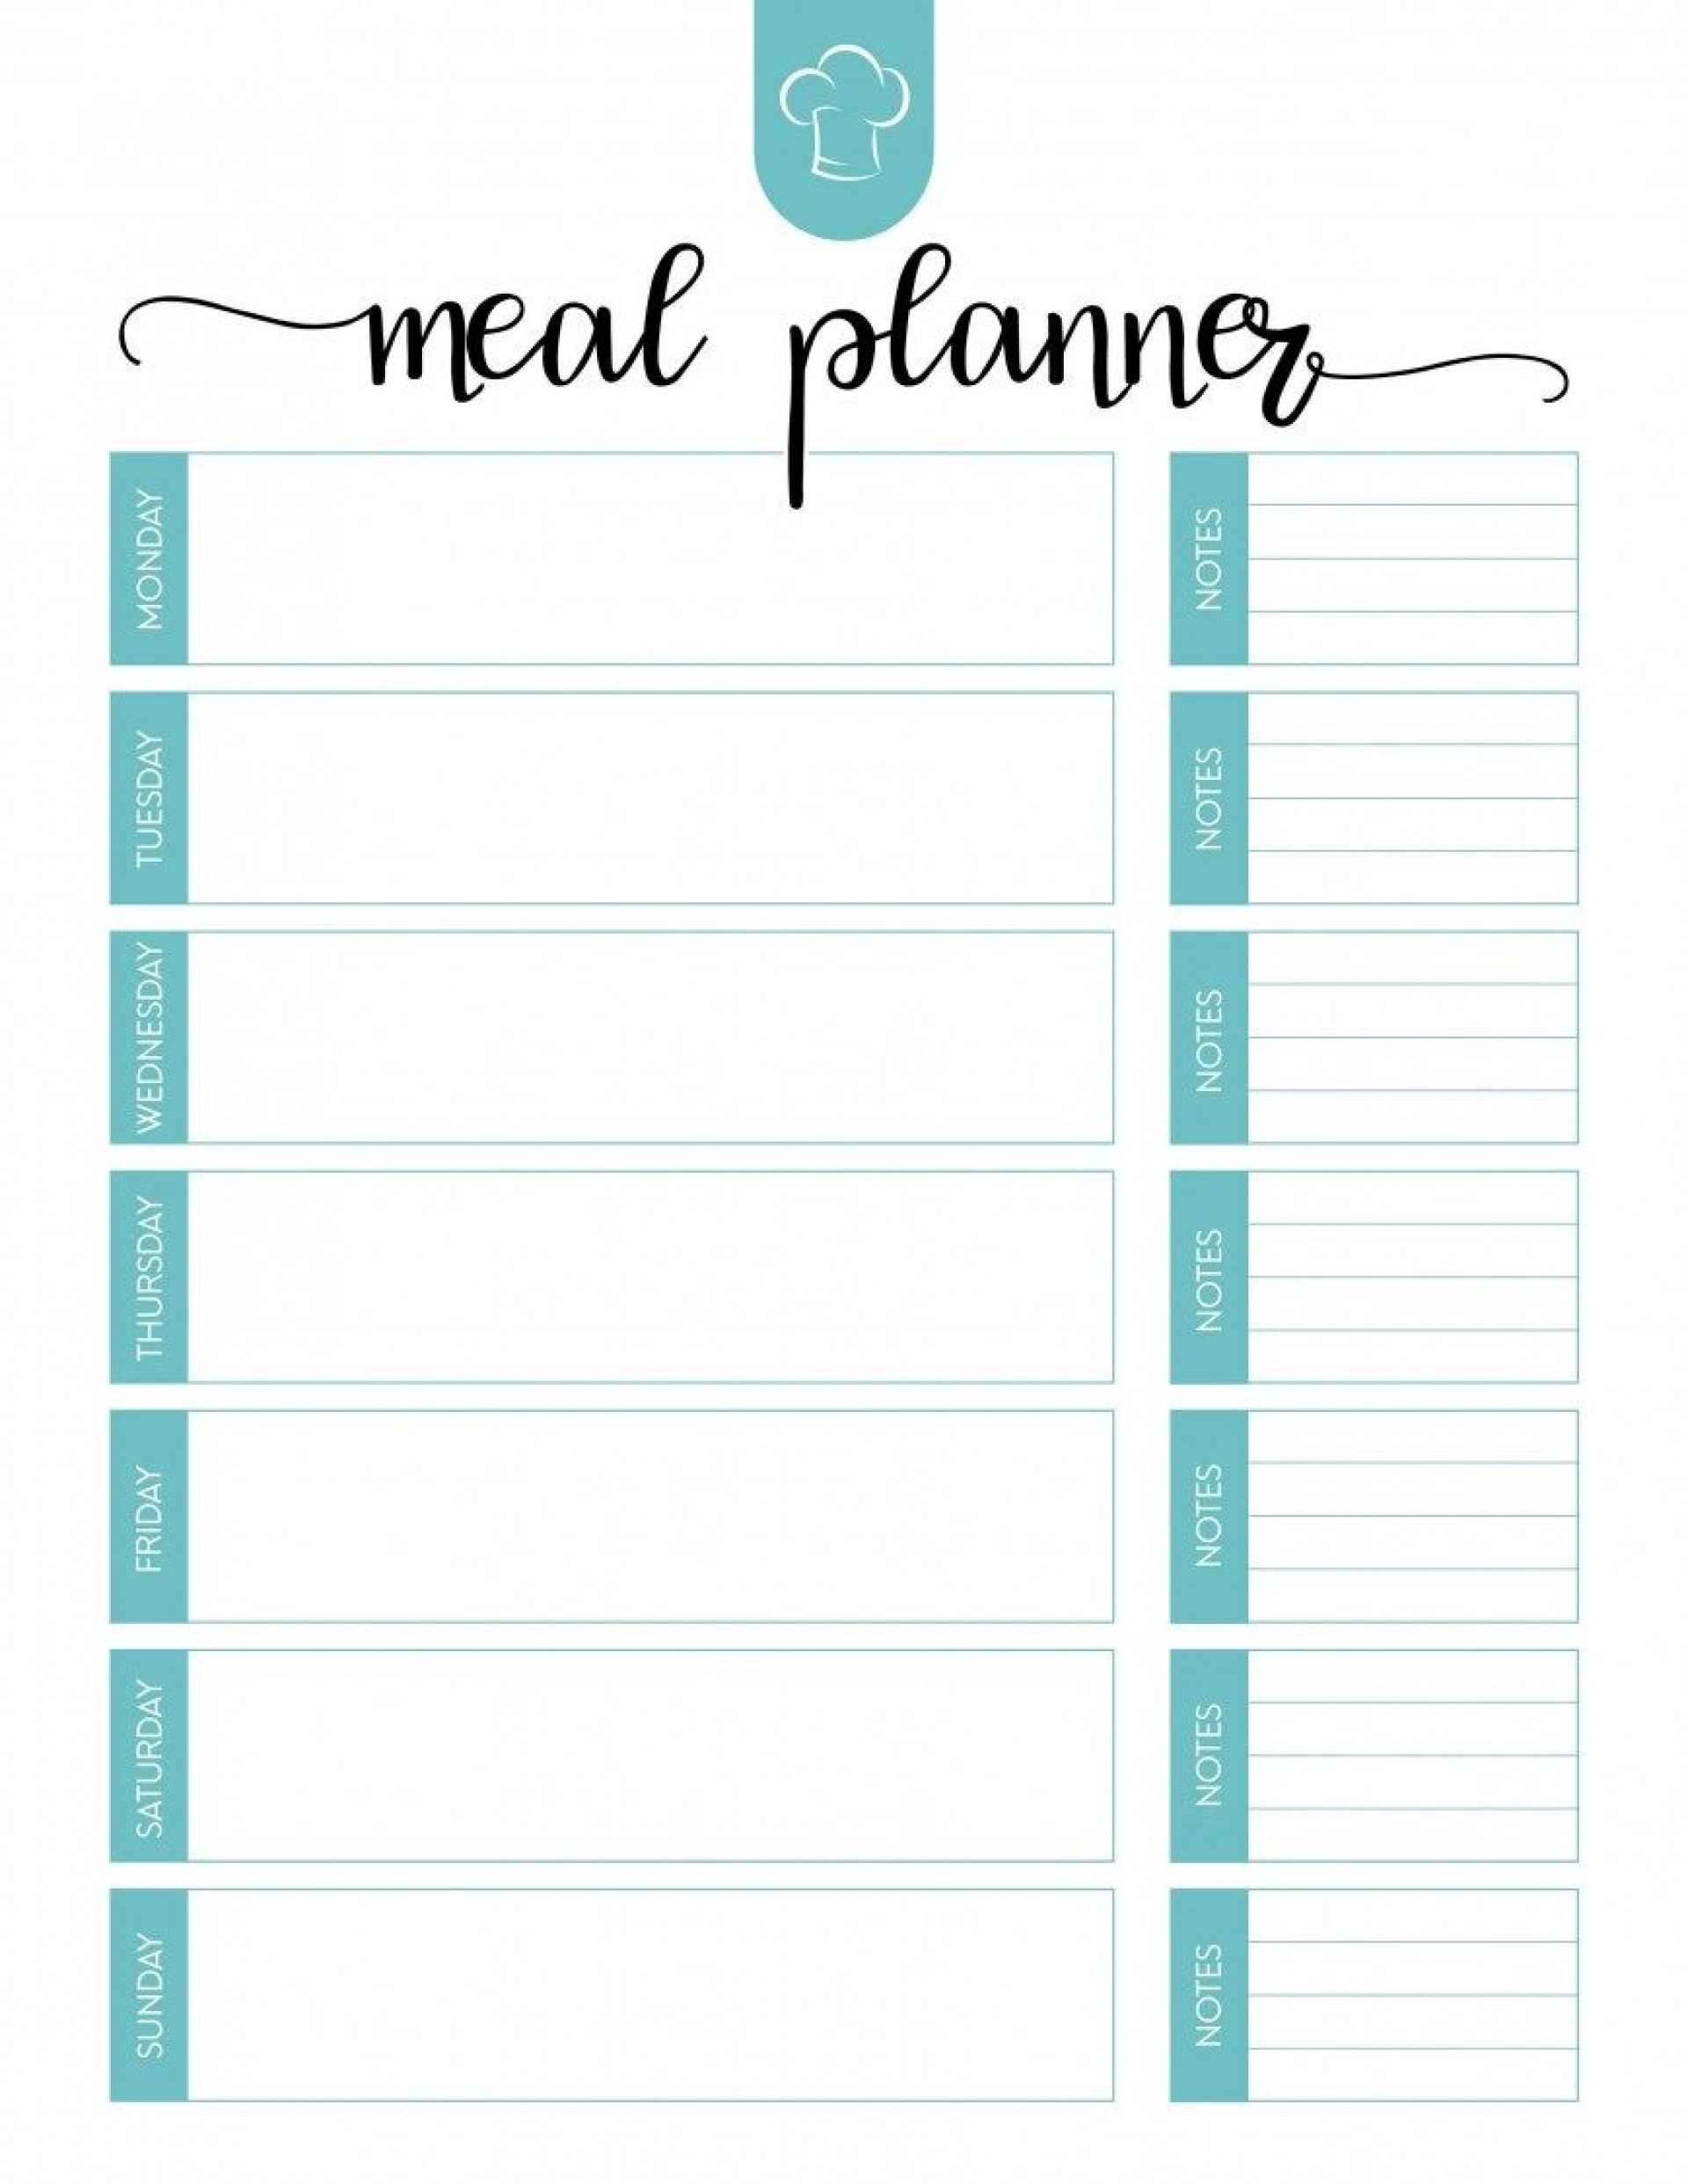 006 Formidable Free Meal Planner Template Word Highest Quality  Editable Weekly Monthly1920